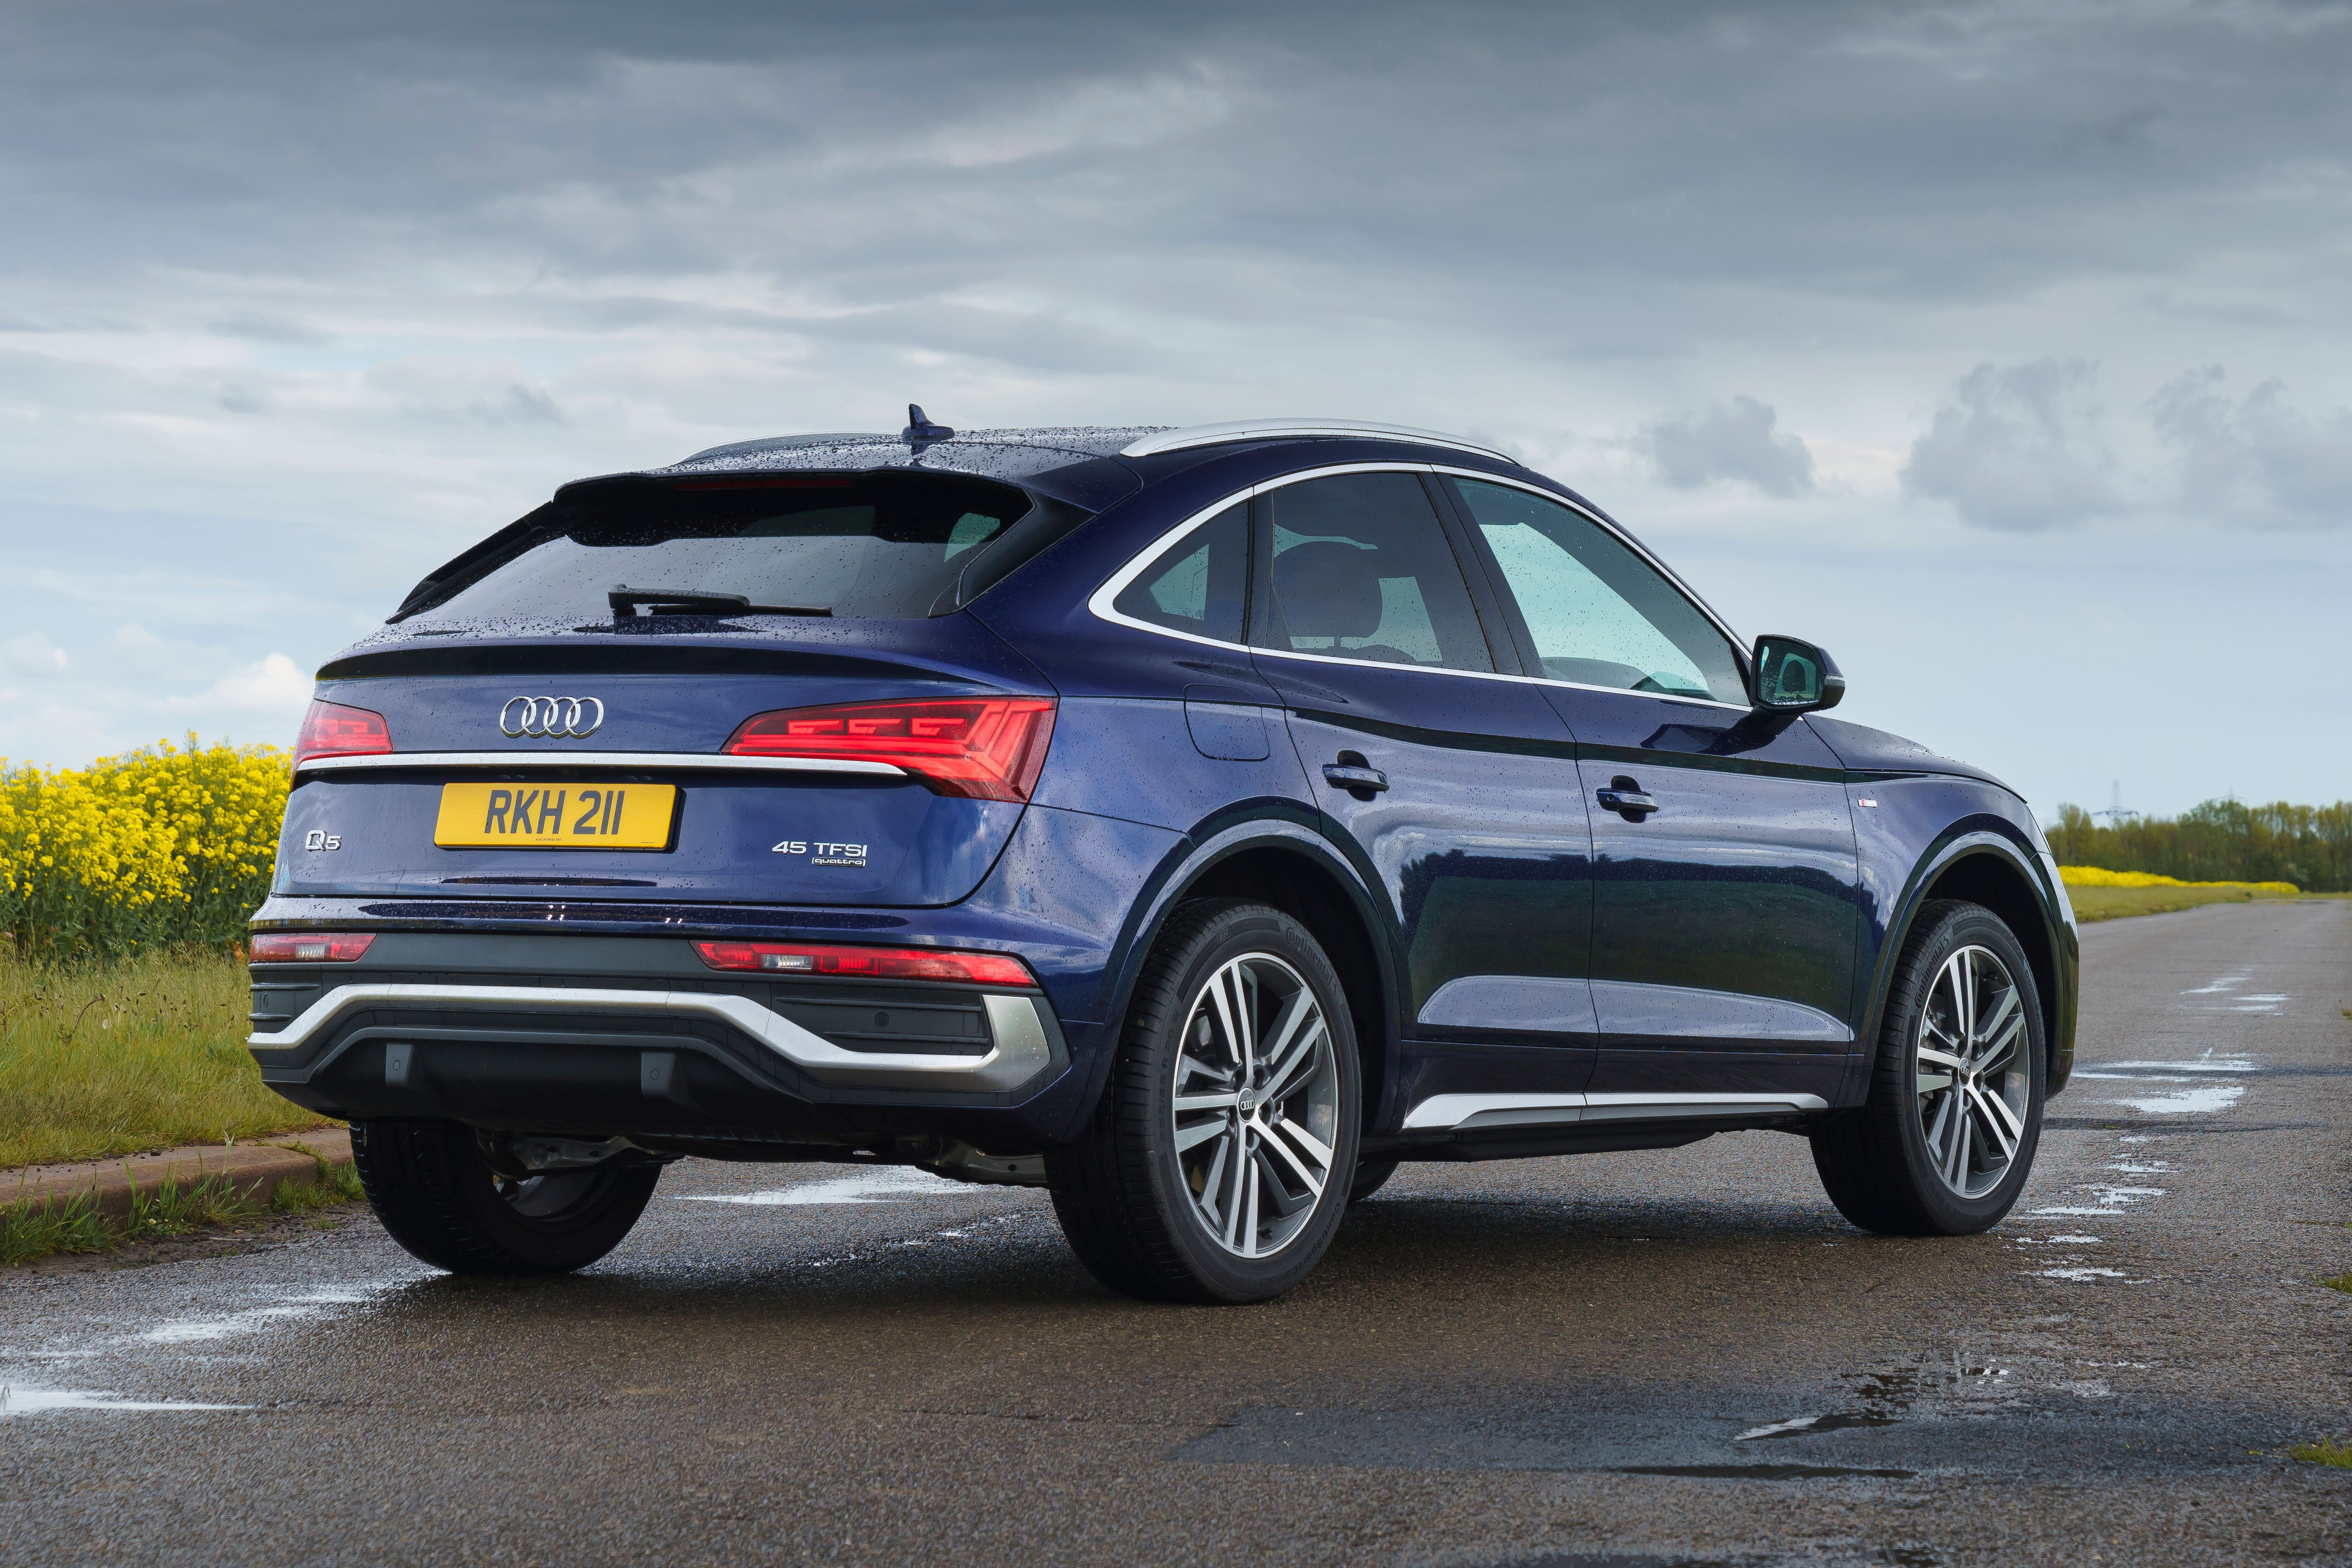 A rakish roofline eats into boot space –but it's still a surprisingly practical SUV